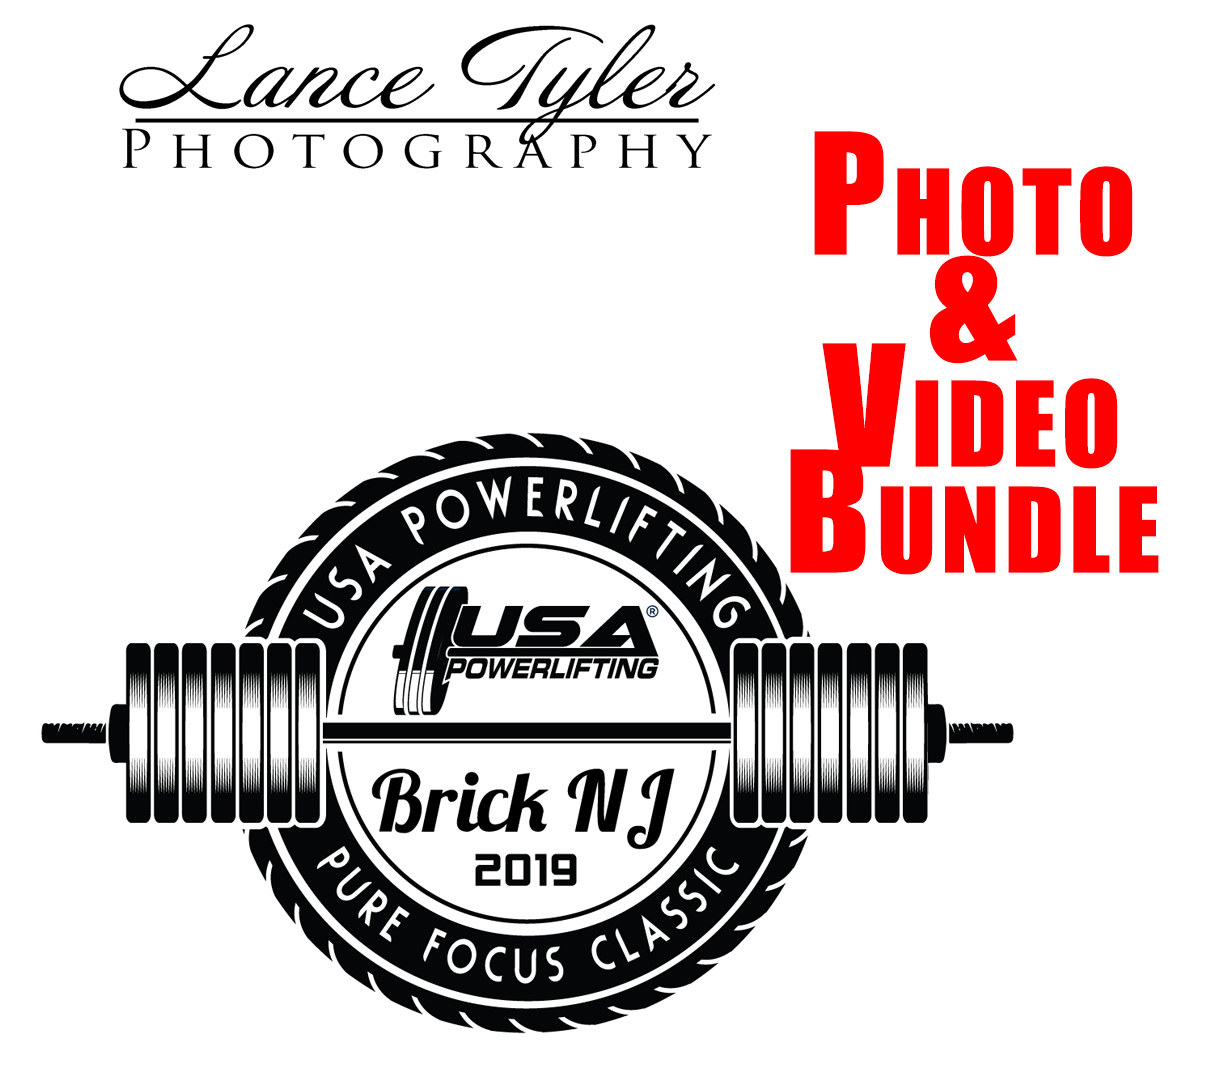 3 Events AND Video Bundle